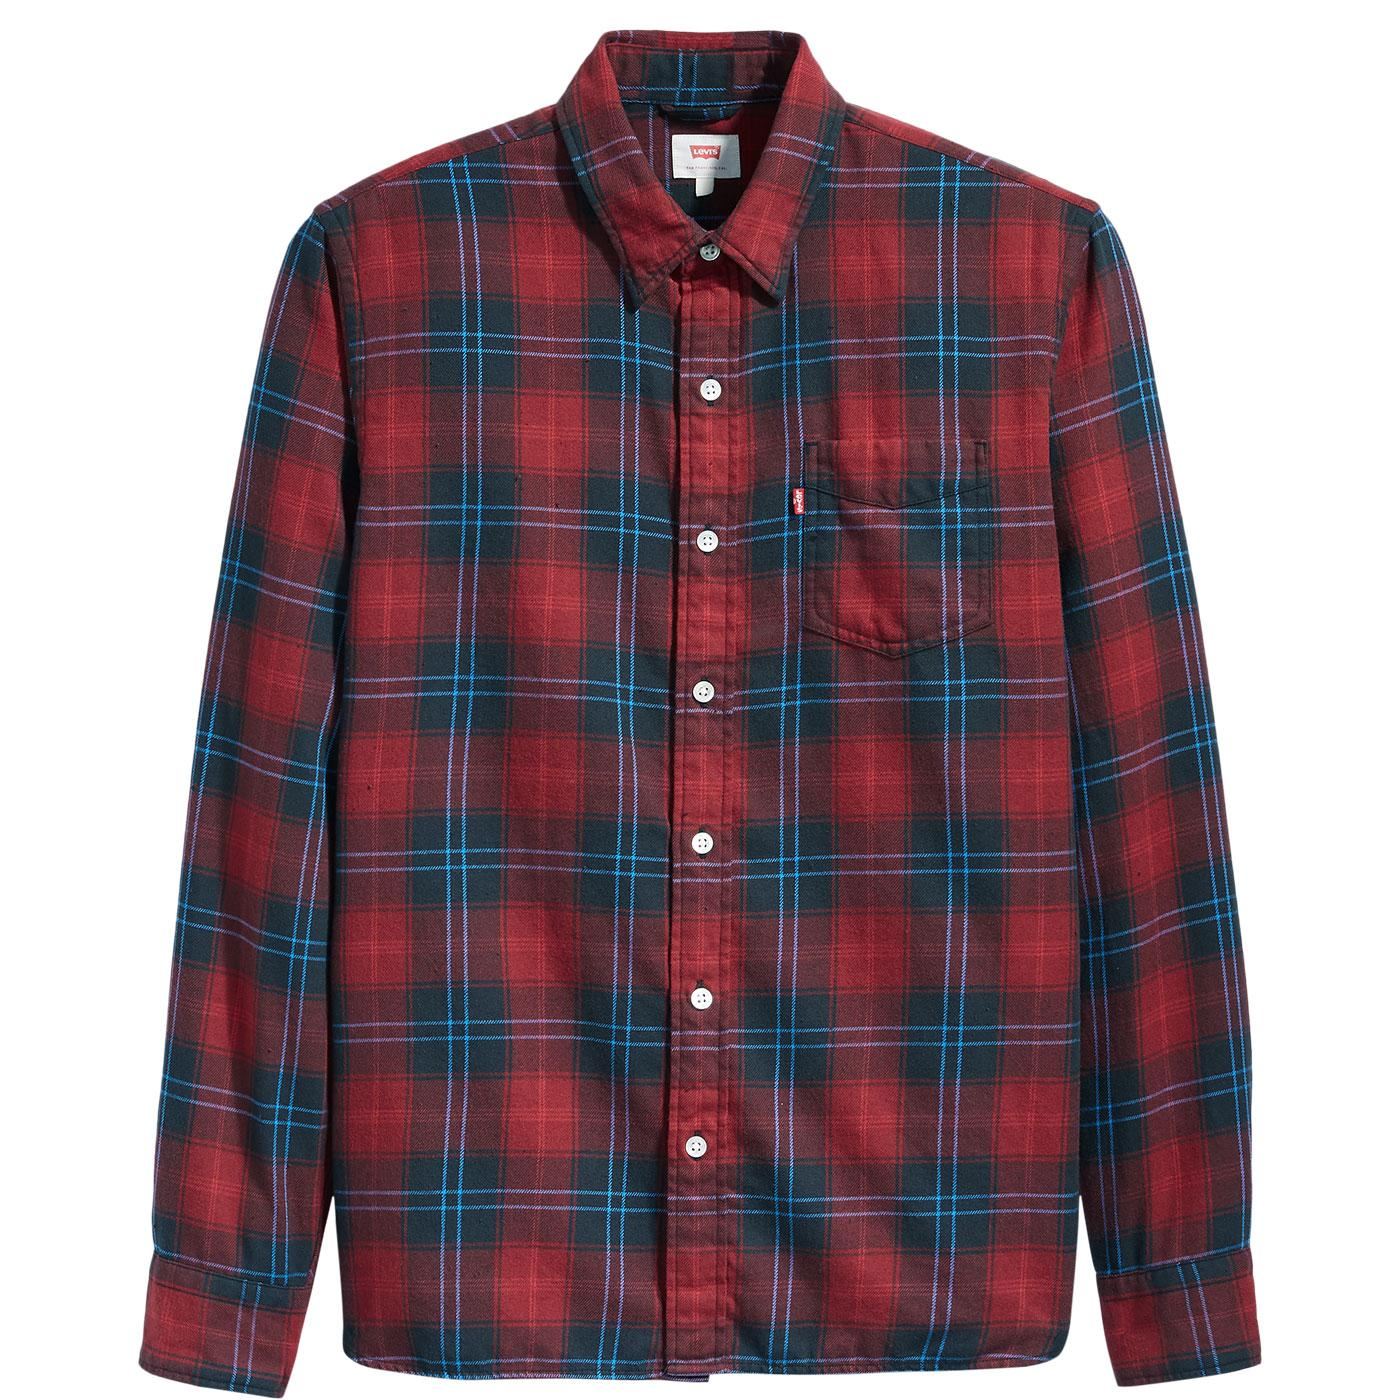 LEVI'S Sunset Pocket Cummings Graphite Check Shirt